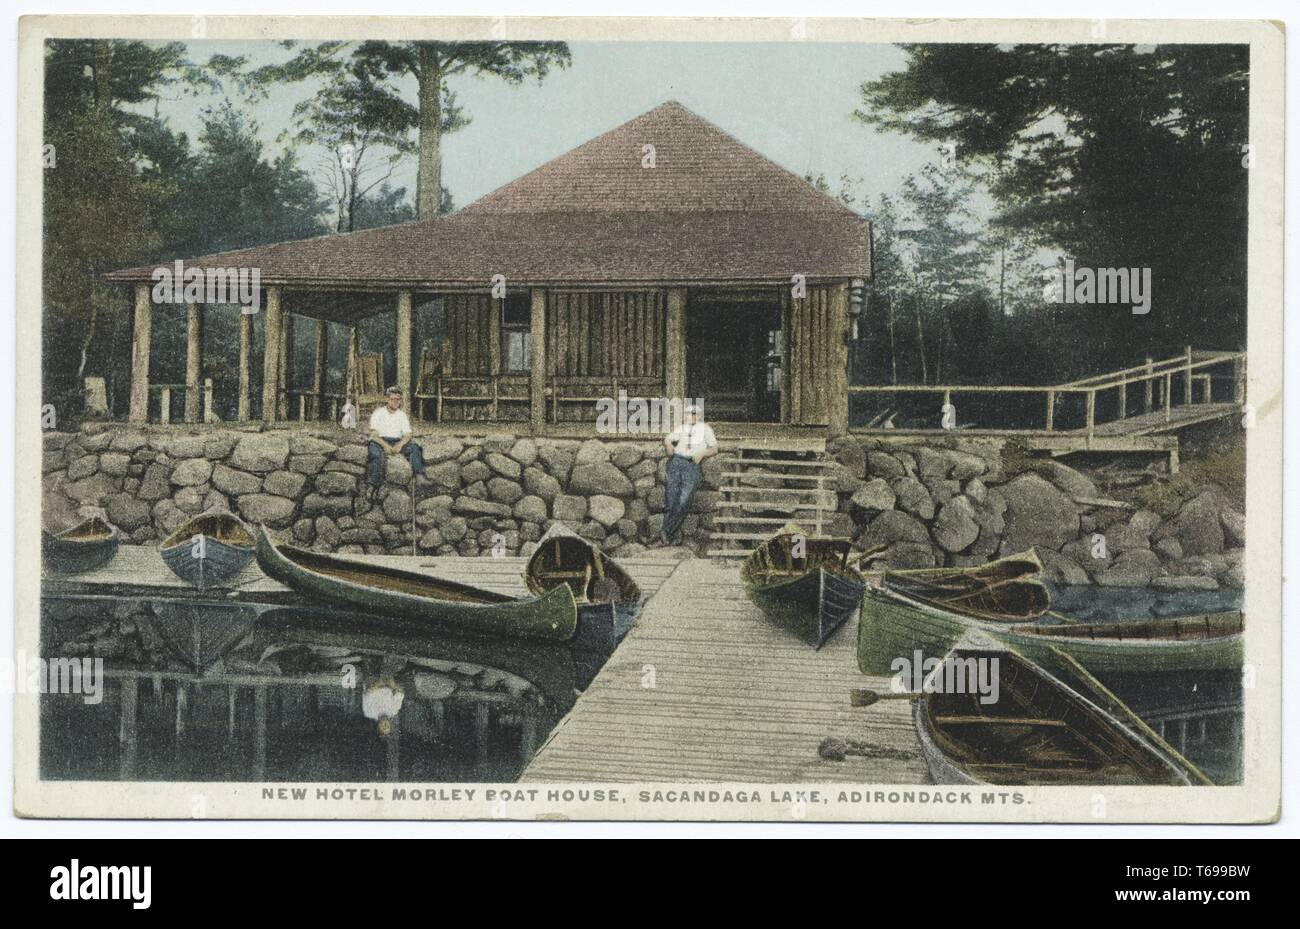 Postcard of the New Hotel Morley Boat House at Sacandaga Lake in the Adirondack Mountains, 1914. From the New York Public Library. () - Stock Image